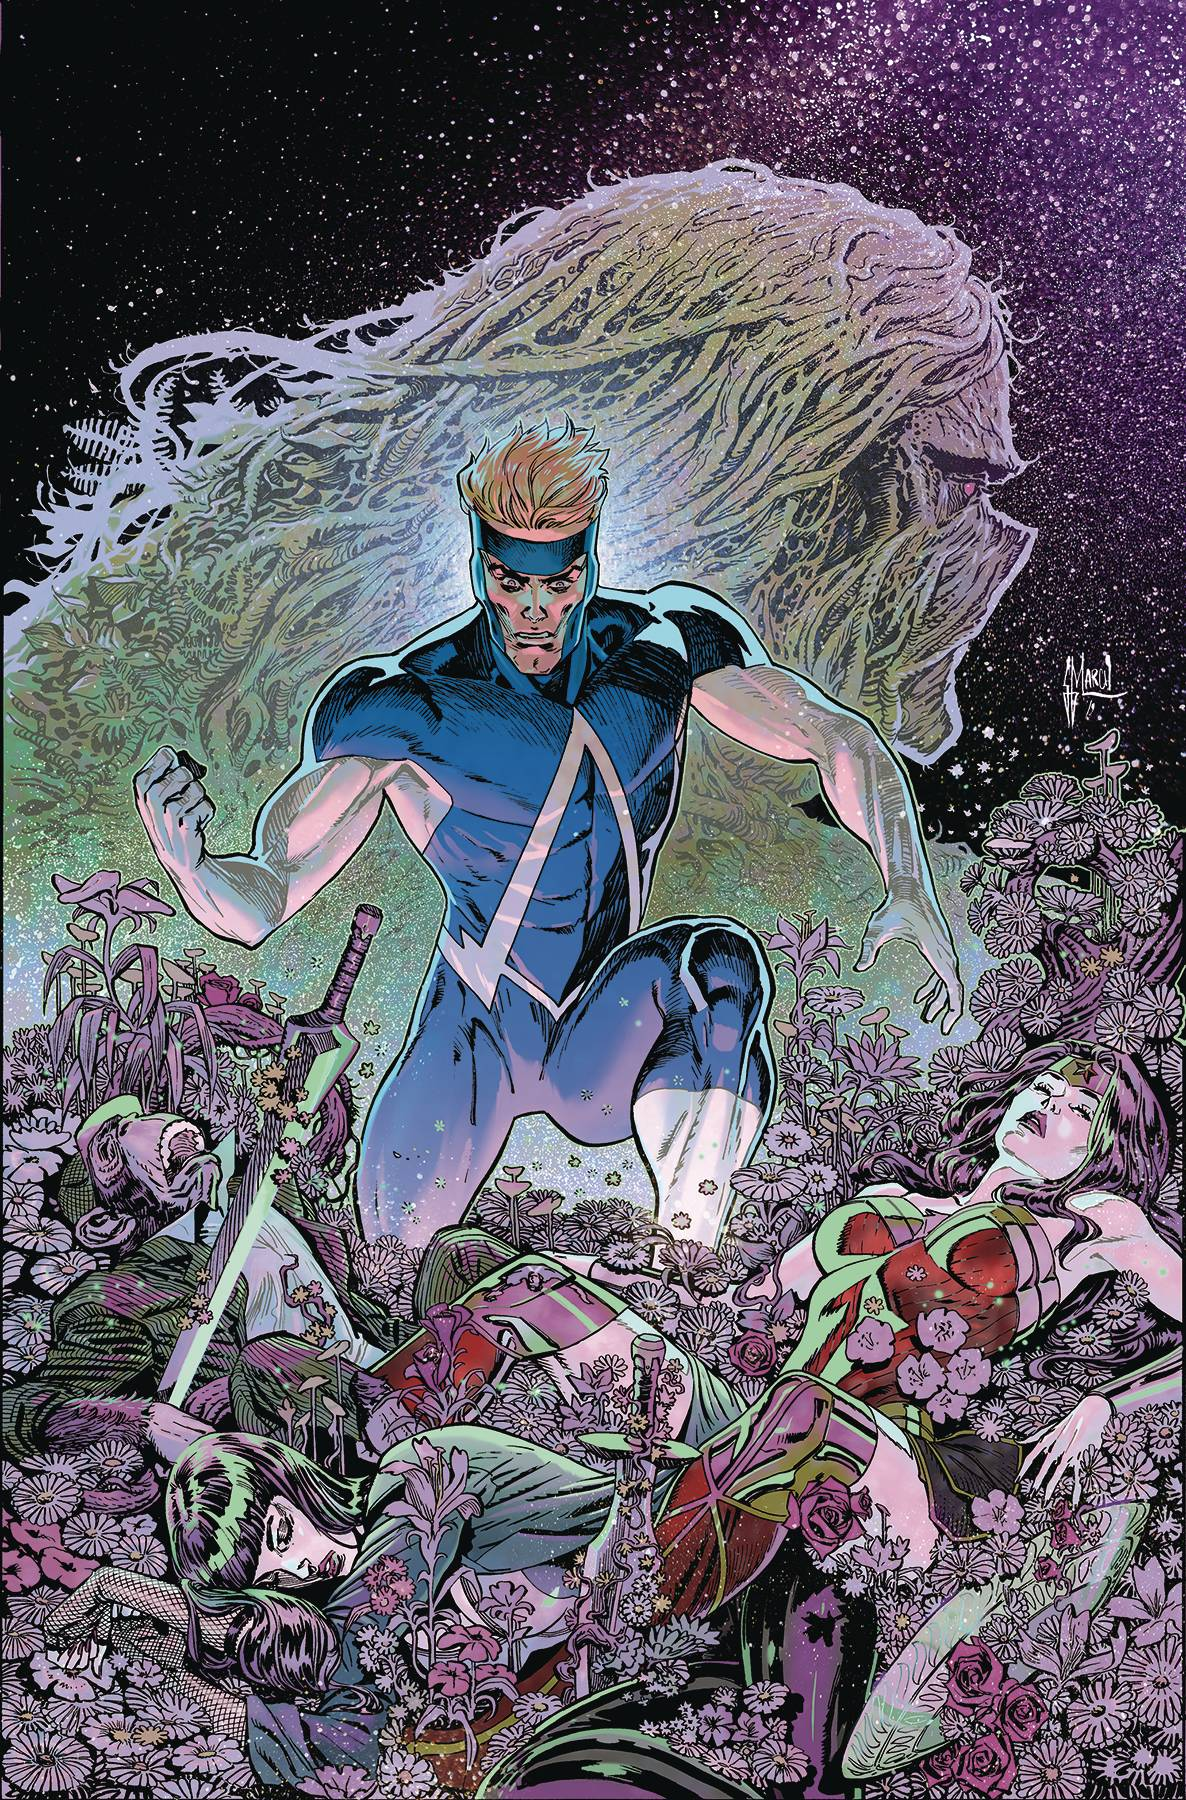 02/26/2020 JUSTICE LEAGUE DARK #20